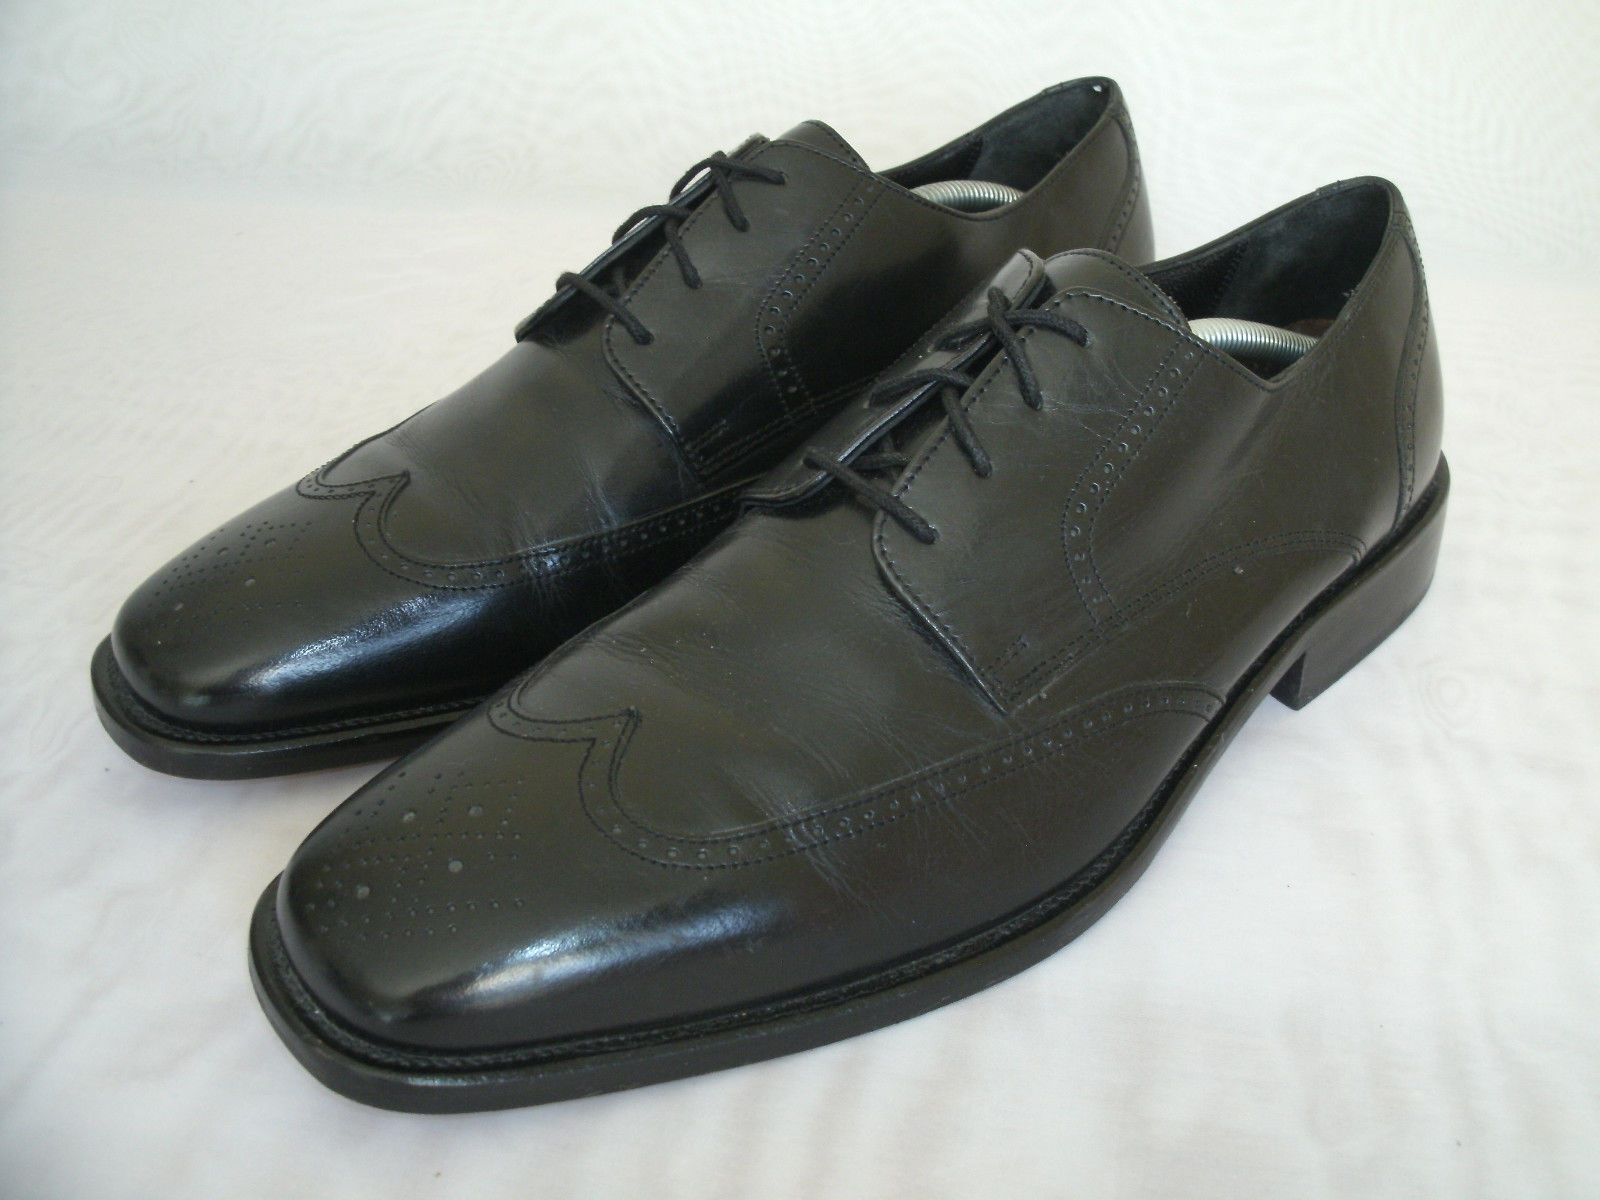 BOSTONIAN WINGTIP BLACK LEATHER OXFORD DRESS SHOES   SIZE US 11.5 MEN'S